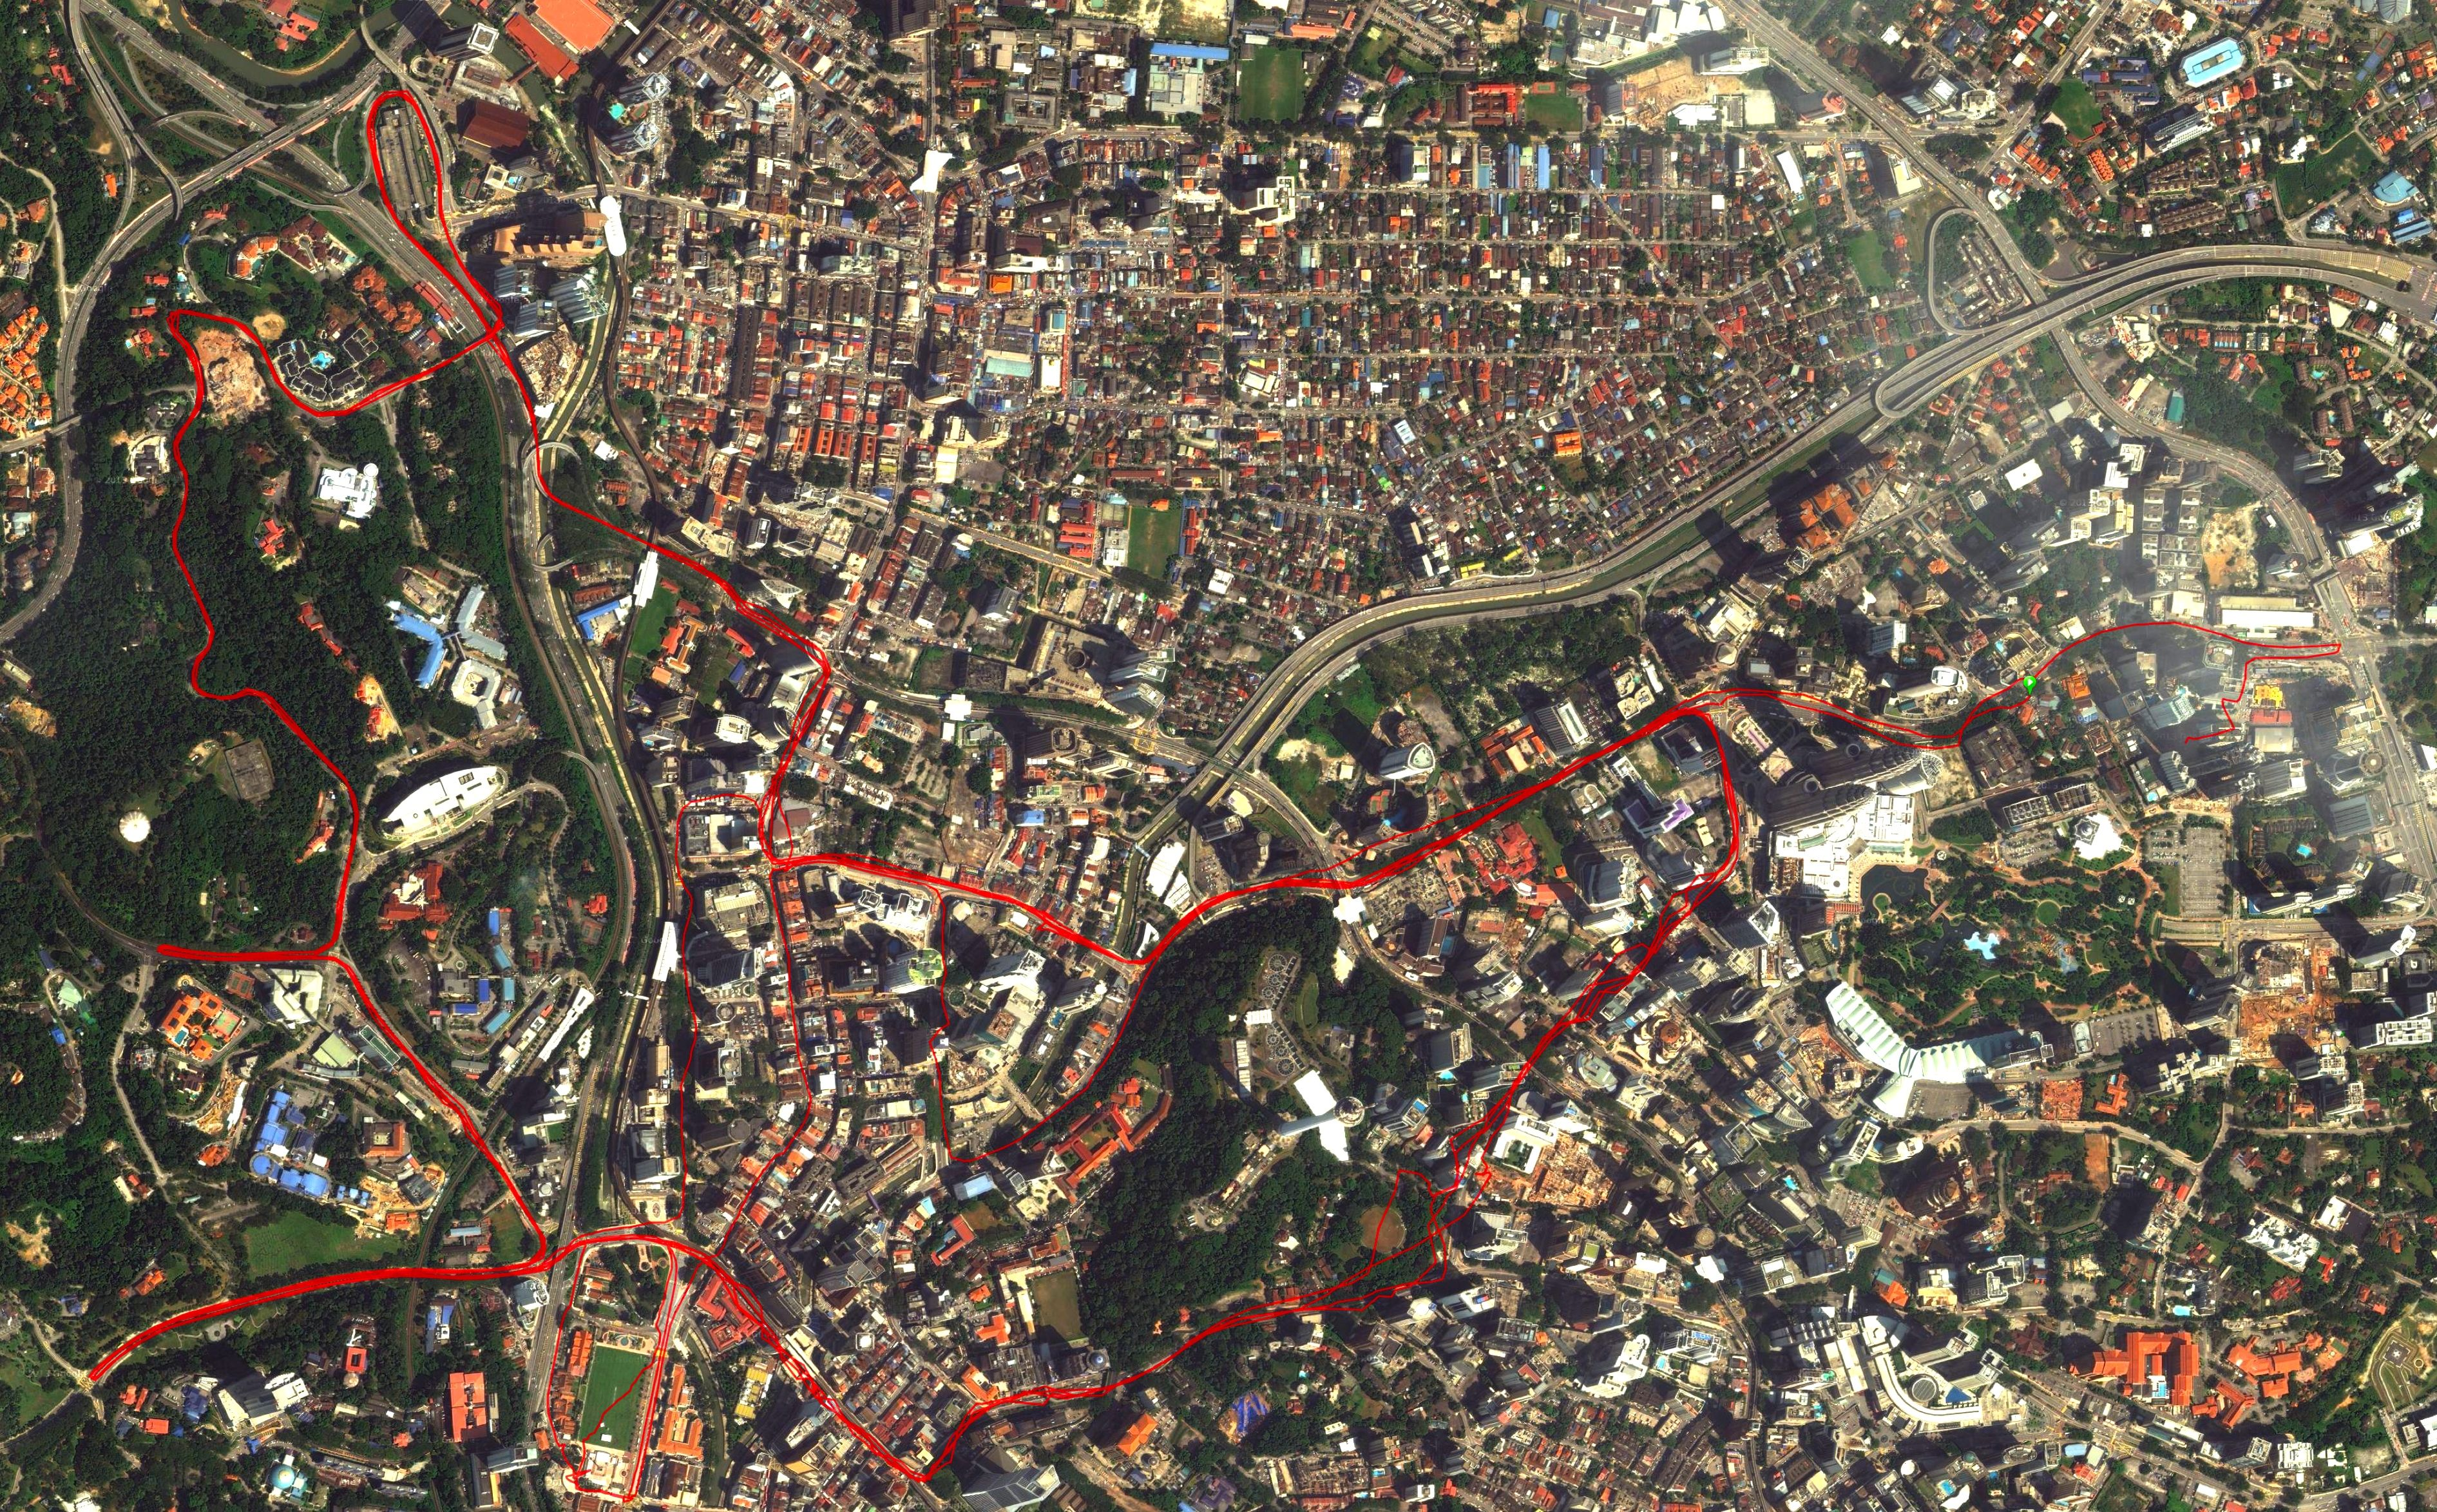 OCBC Cycle Malaysia 2014 Route